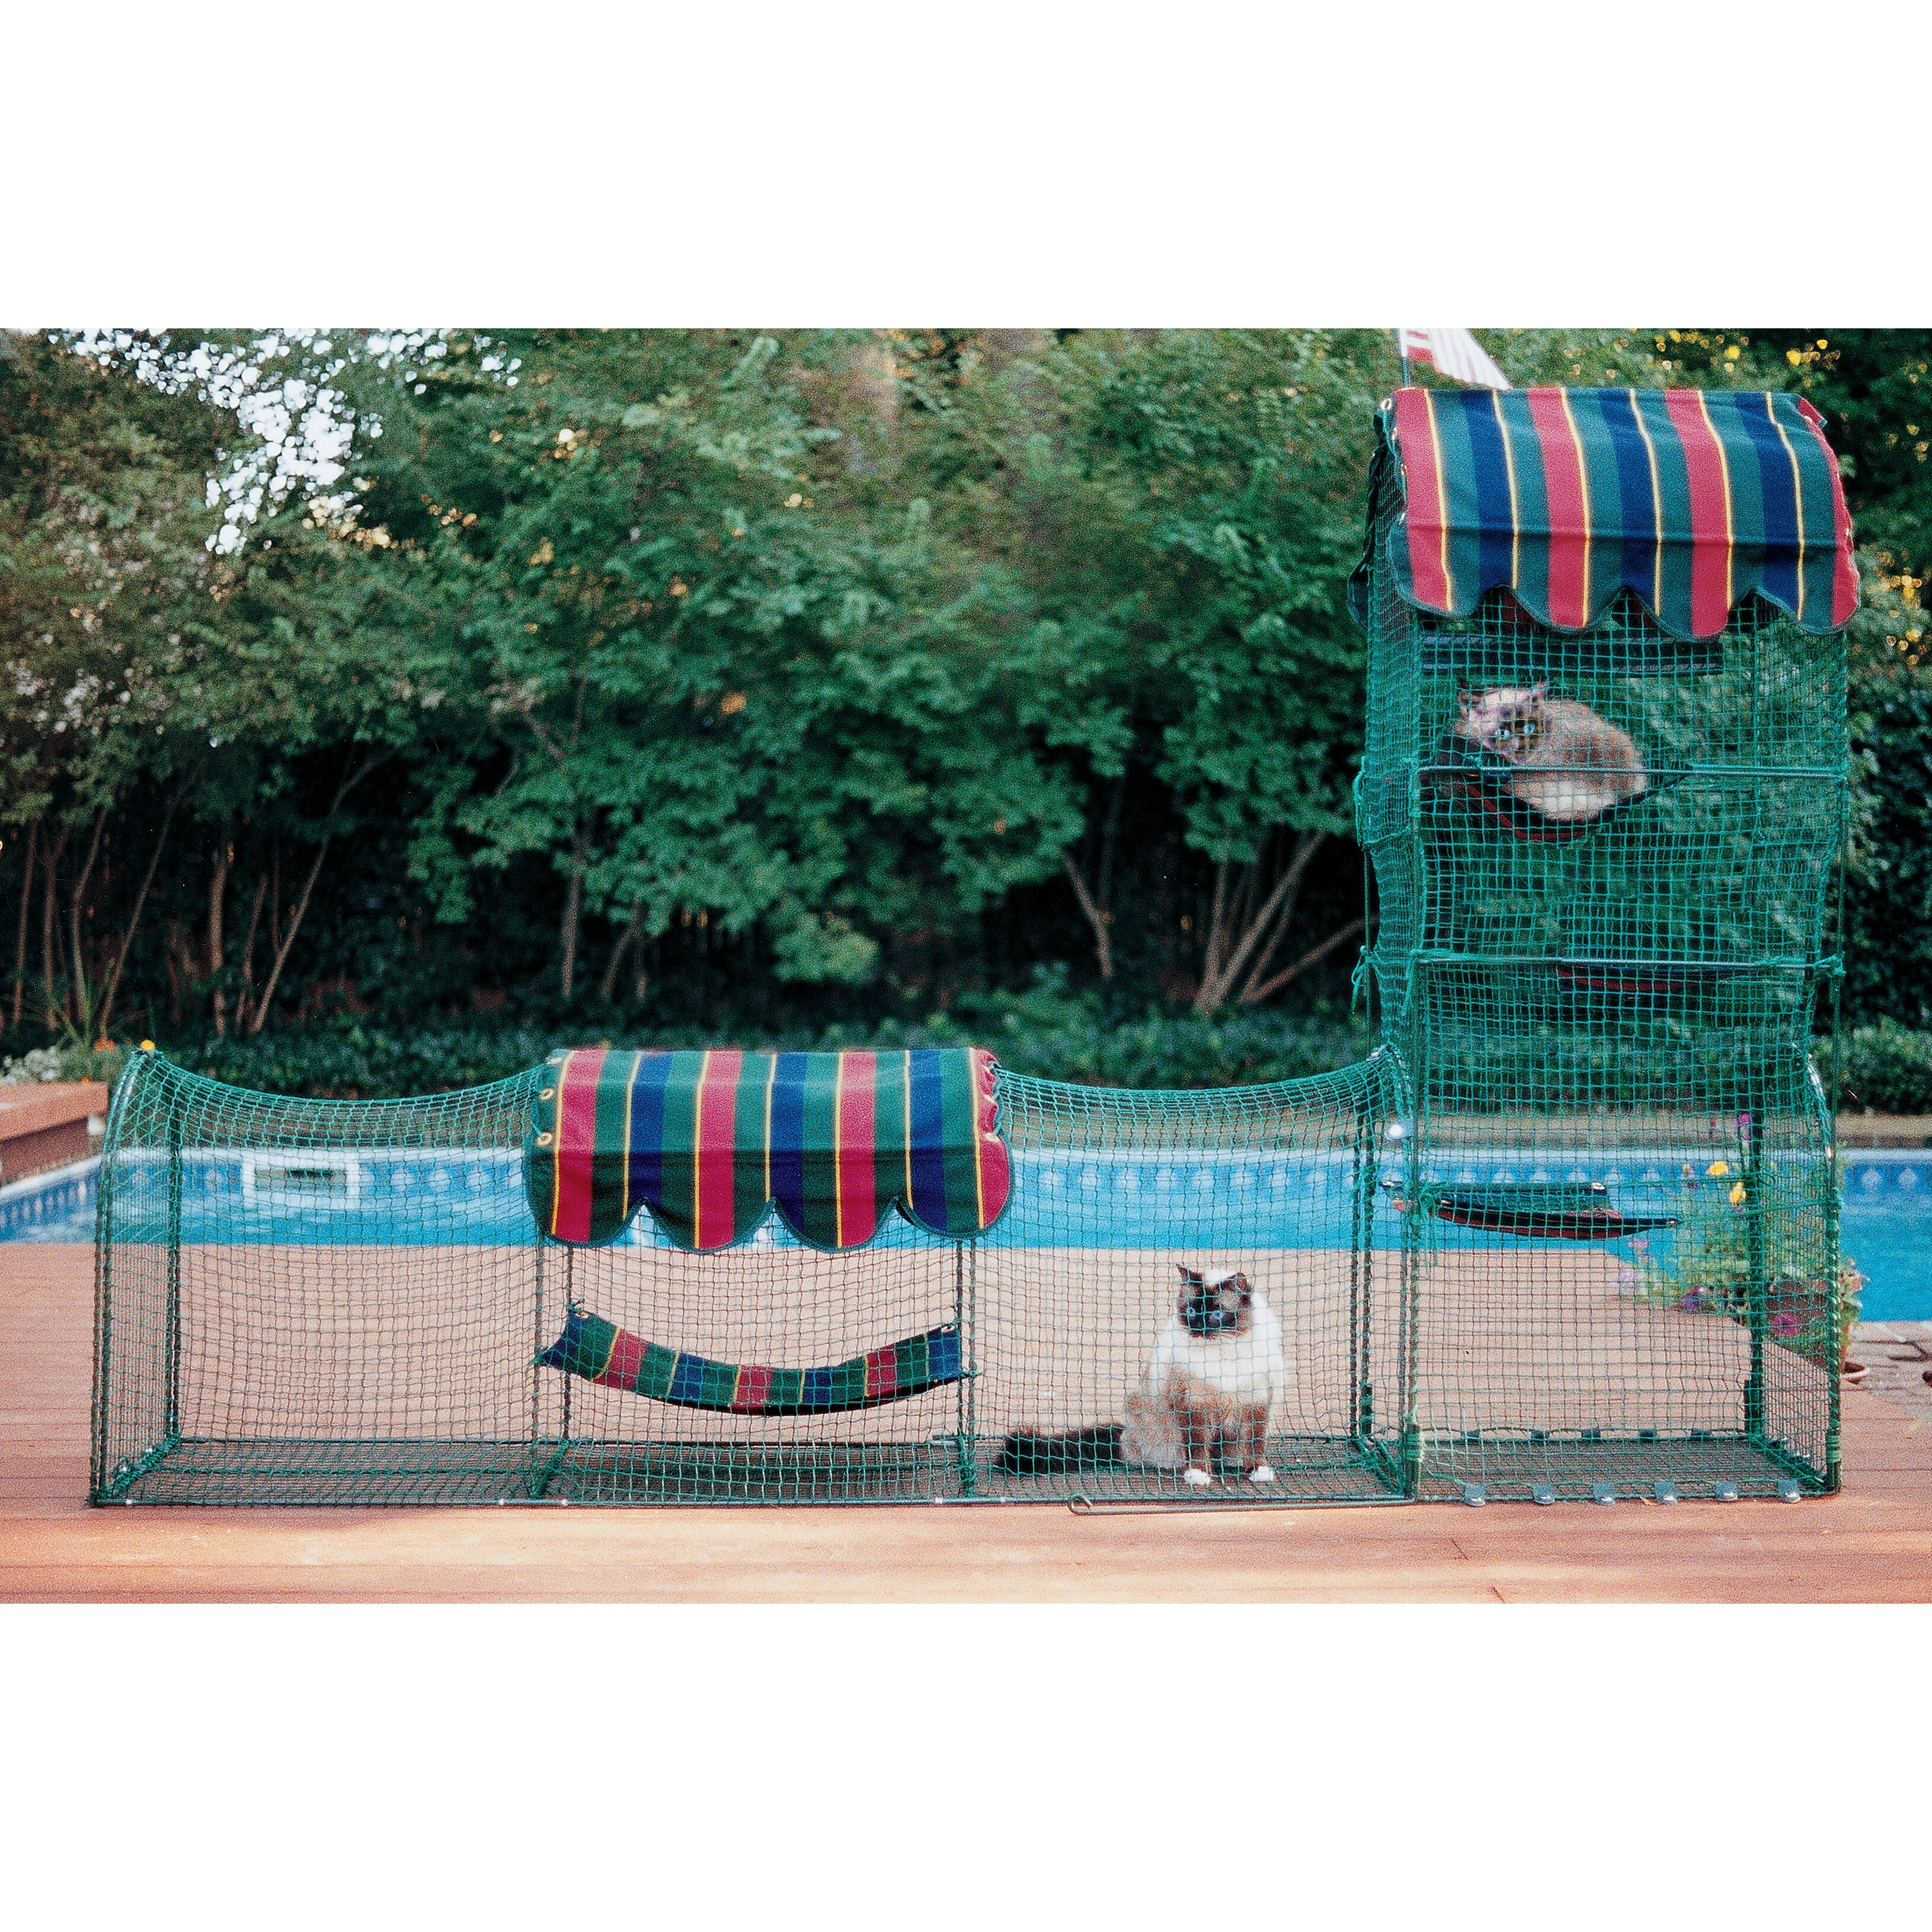 Patio Netting For Cats: Kittywalk Systems Town & Country Outdoor Pet Playpen